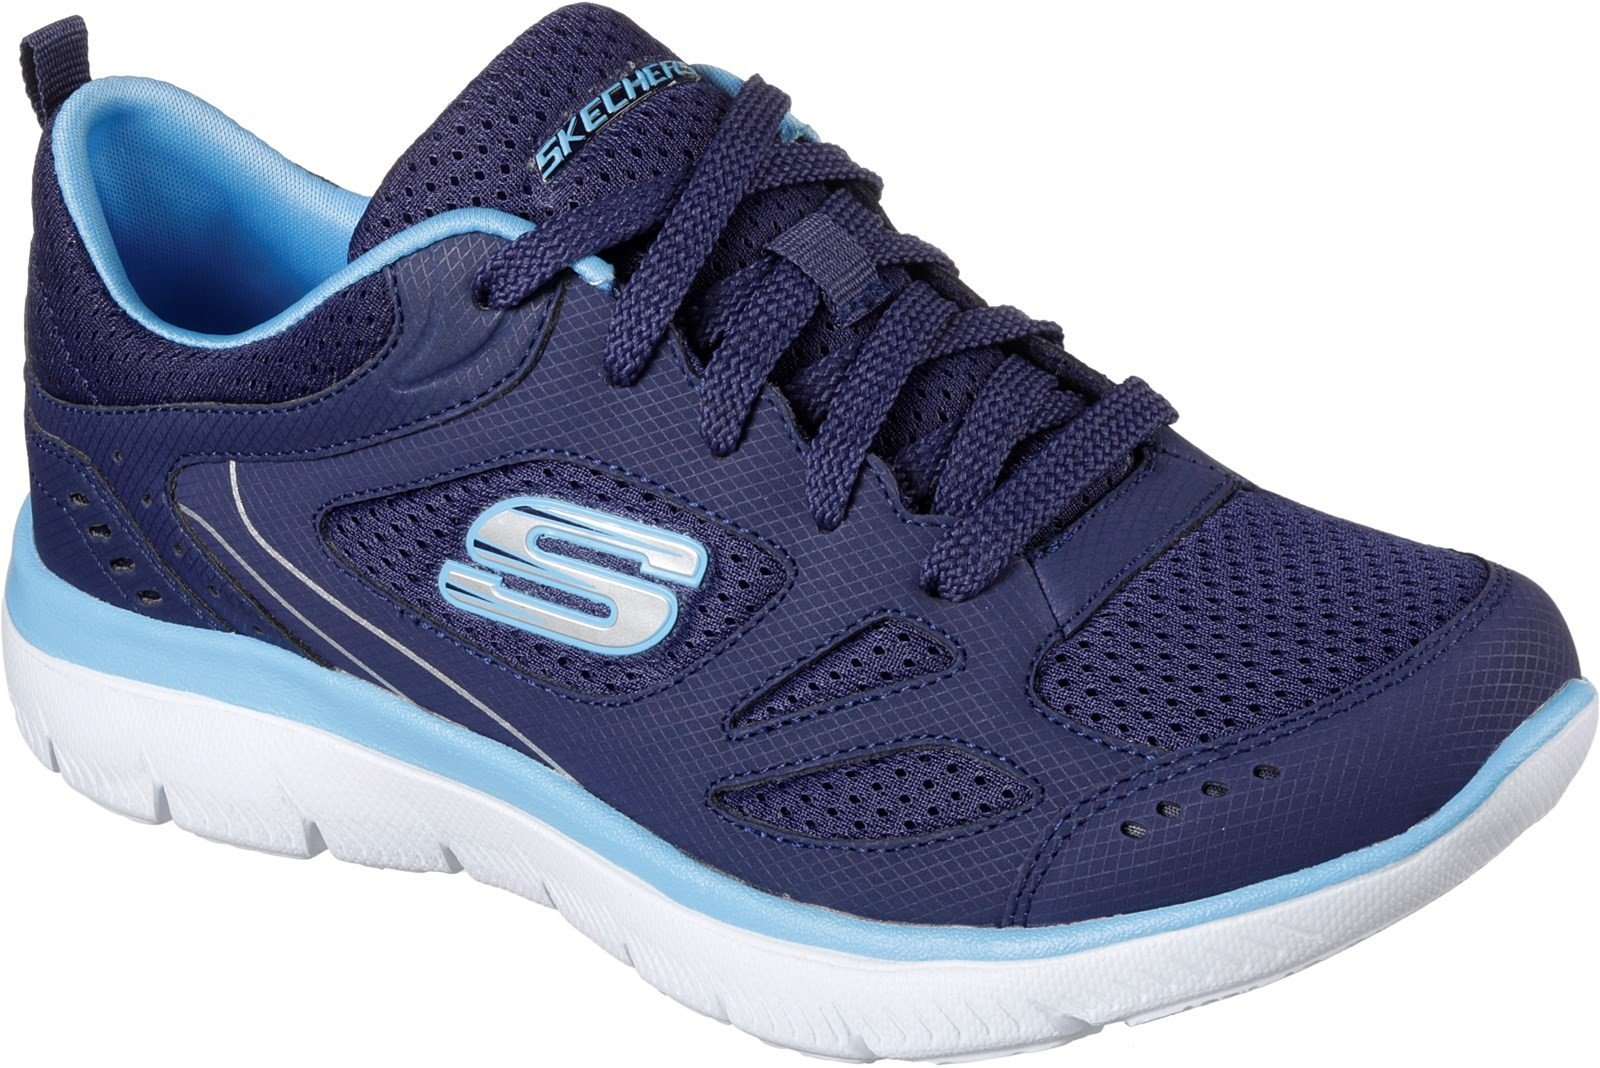 Skechers Women's Summits Suited Lace Up Trainer Multicolor 31941 - Navy/Blue 3